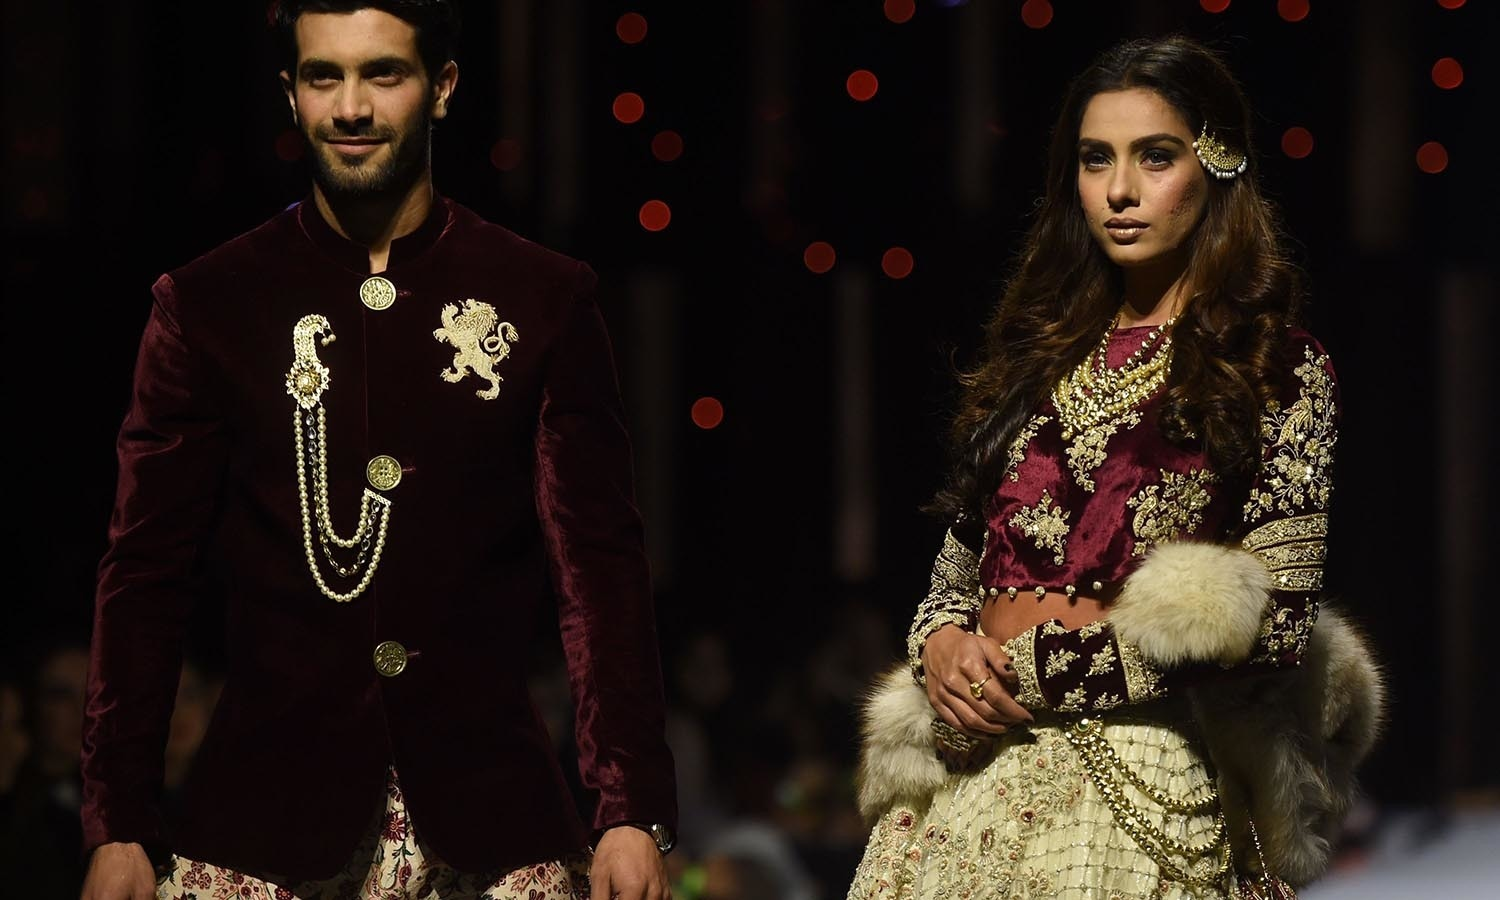 Models present creations by designer Shehla on the first day of the Pakistan Fashion Week in Karachi. — AFP